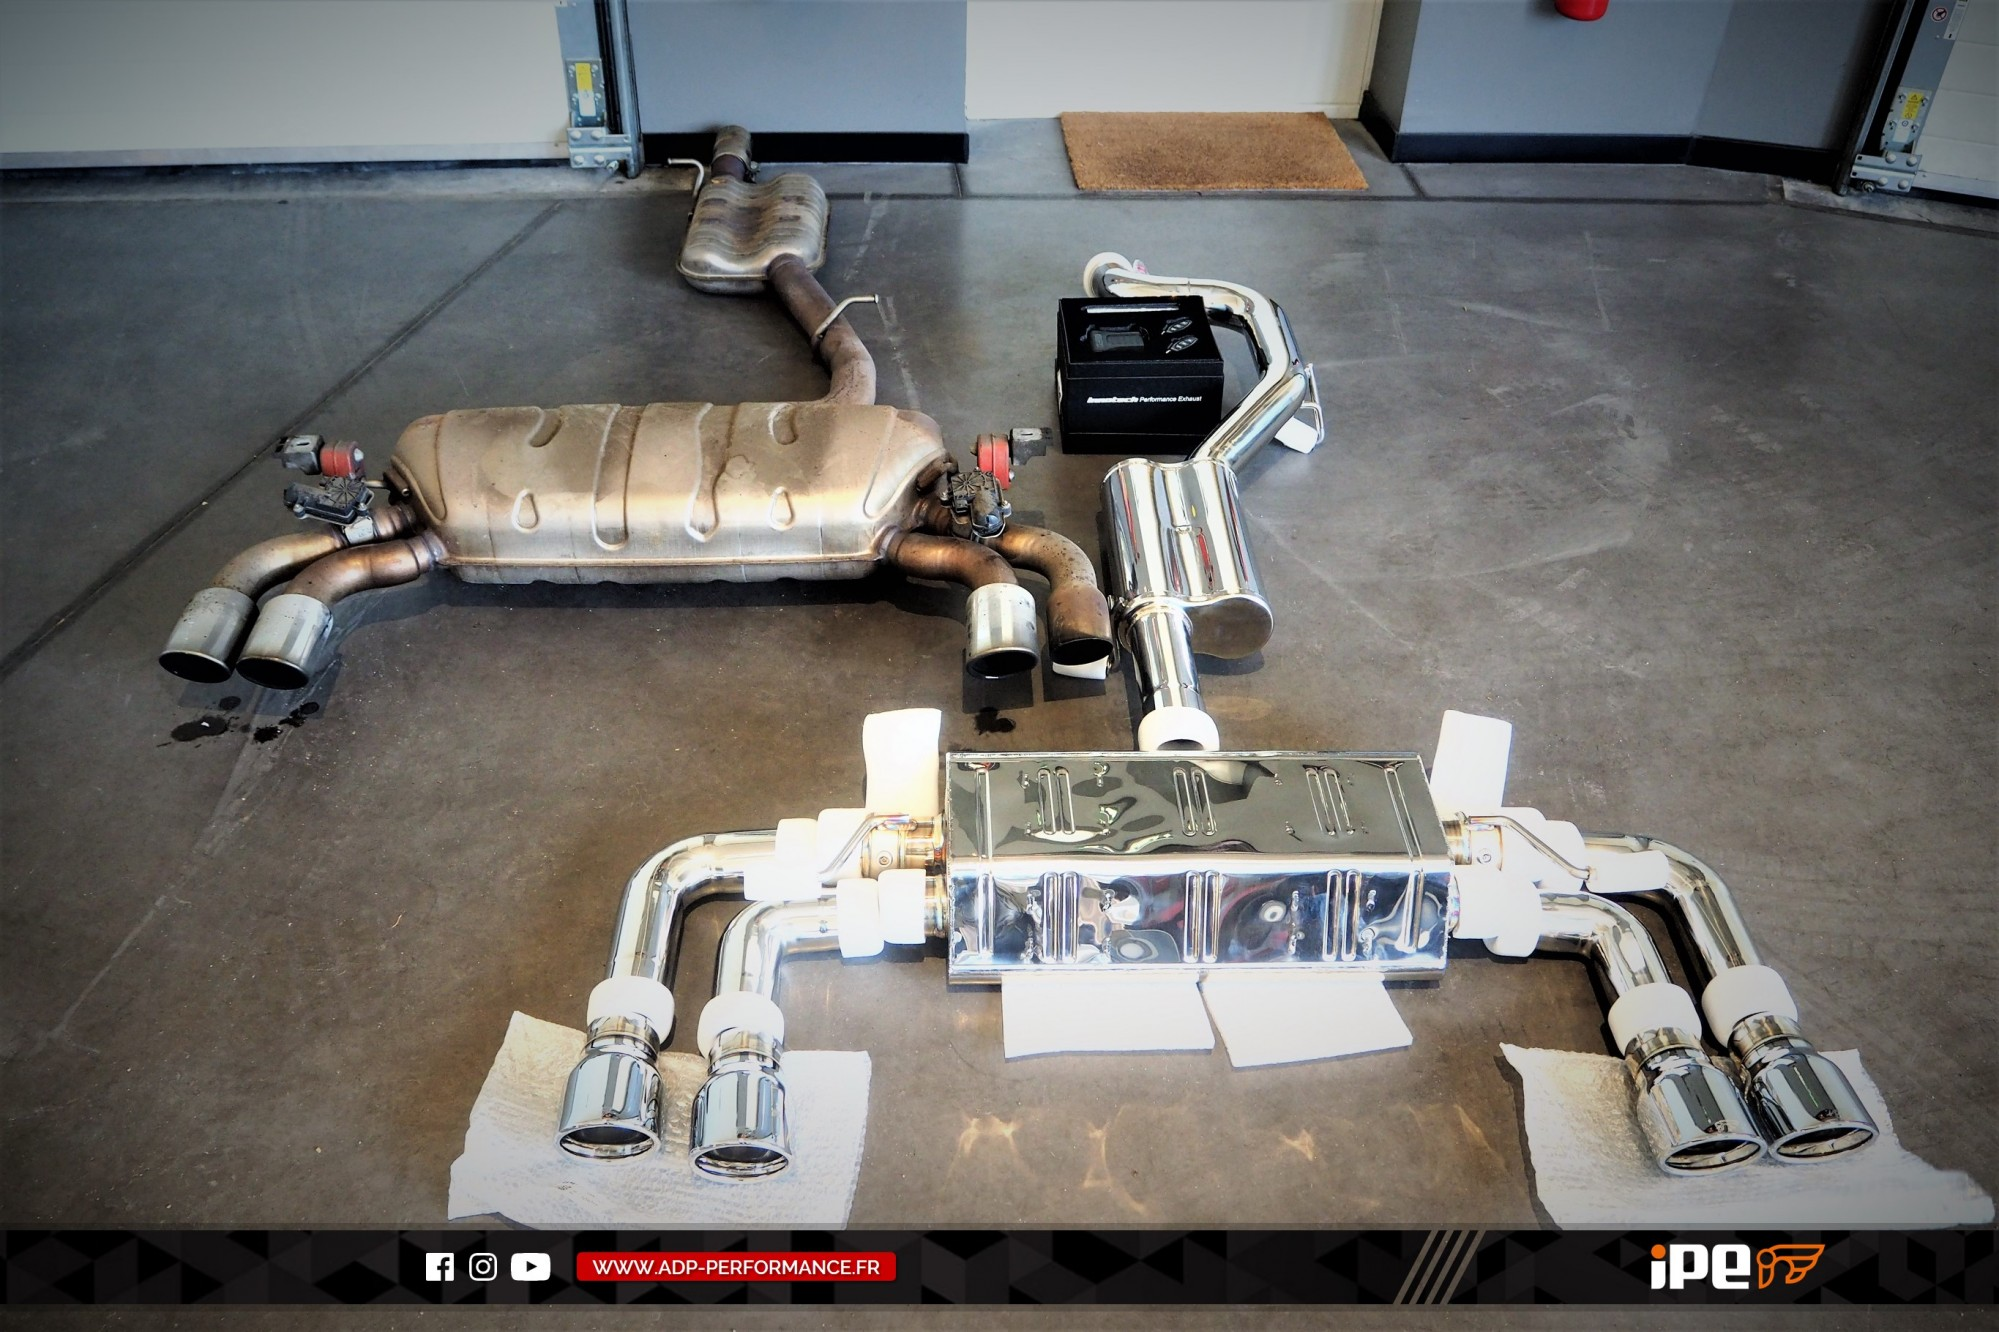 Ligne d'échappement (cat-back) iPE Innotech Marseille - Audi S3 8V - ADP Performance